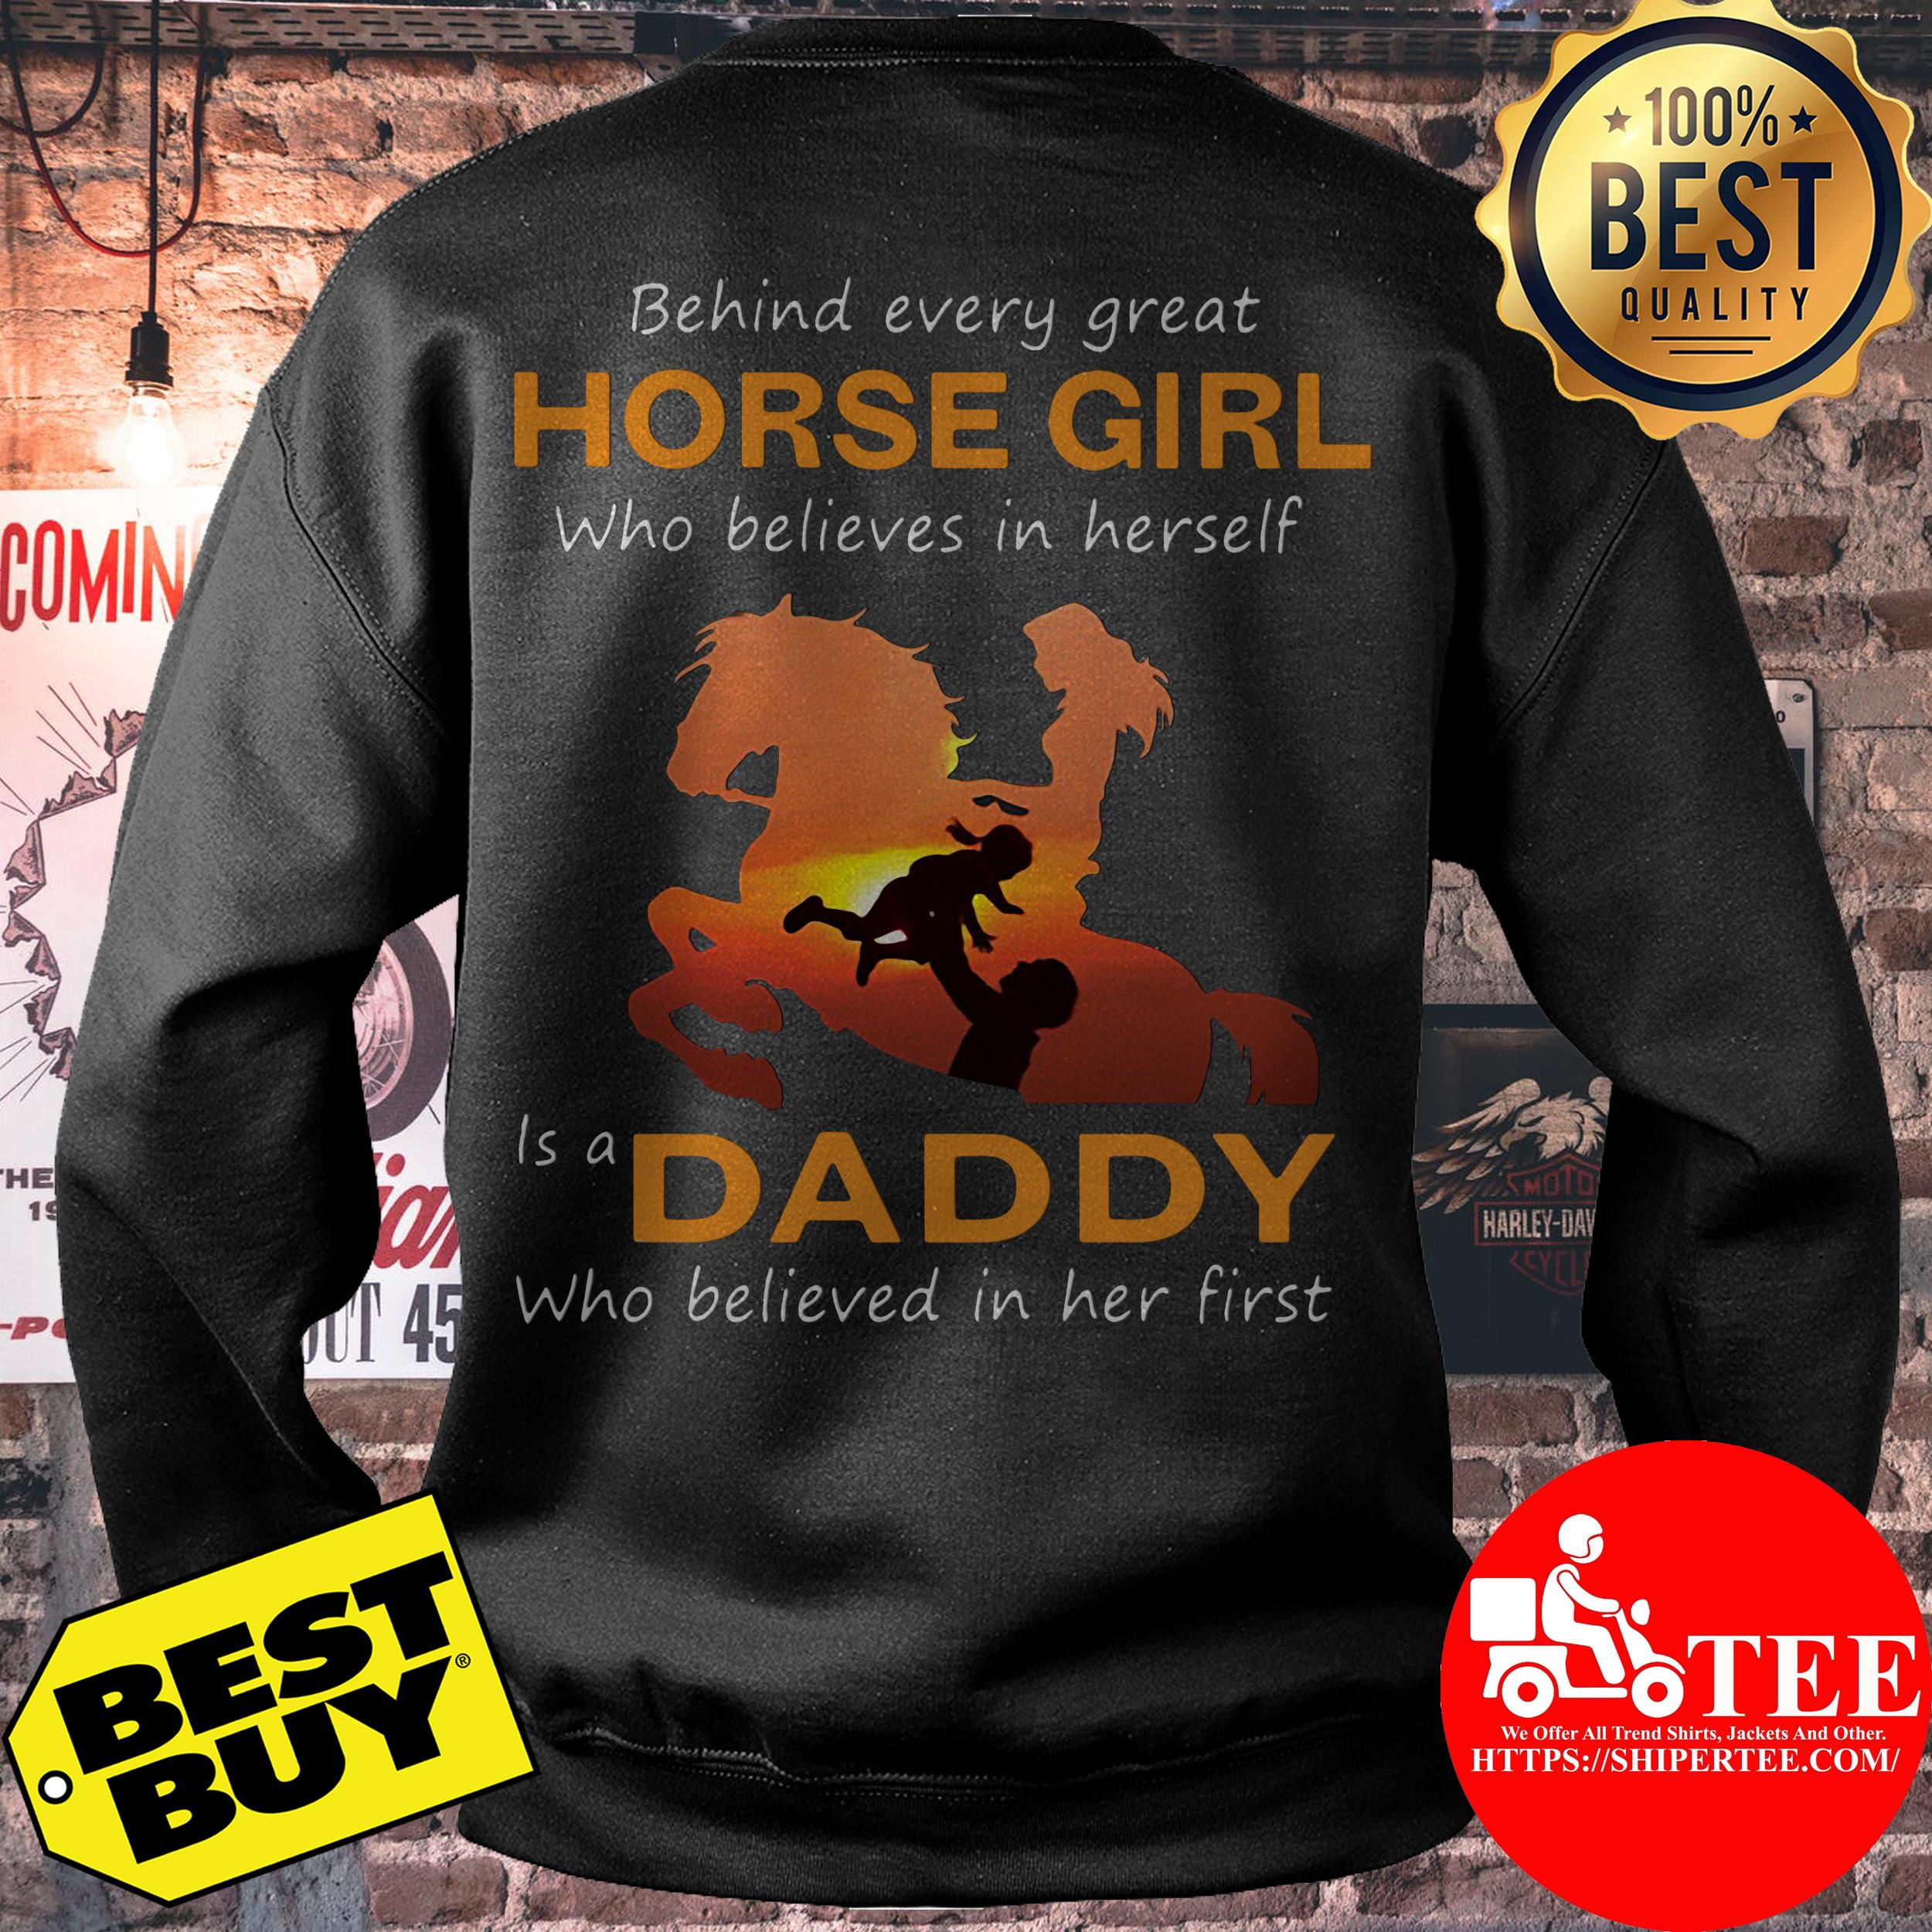 Behind every great horse girl who believes in herself is a daddy sweatshirt